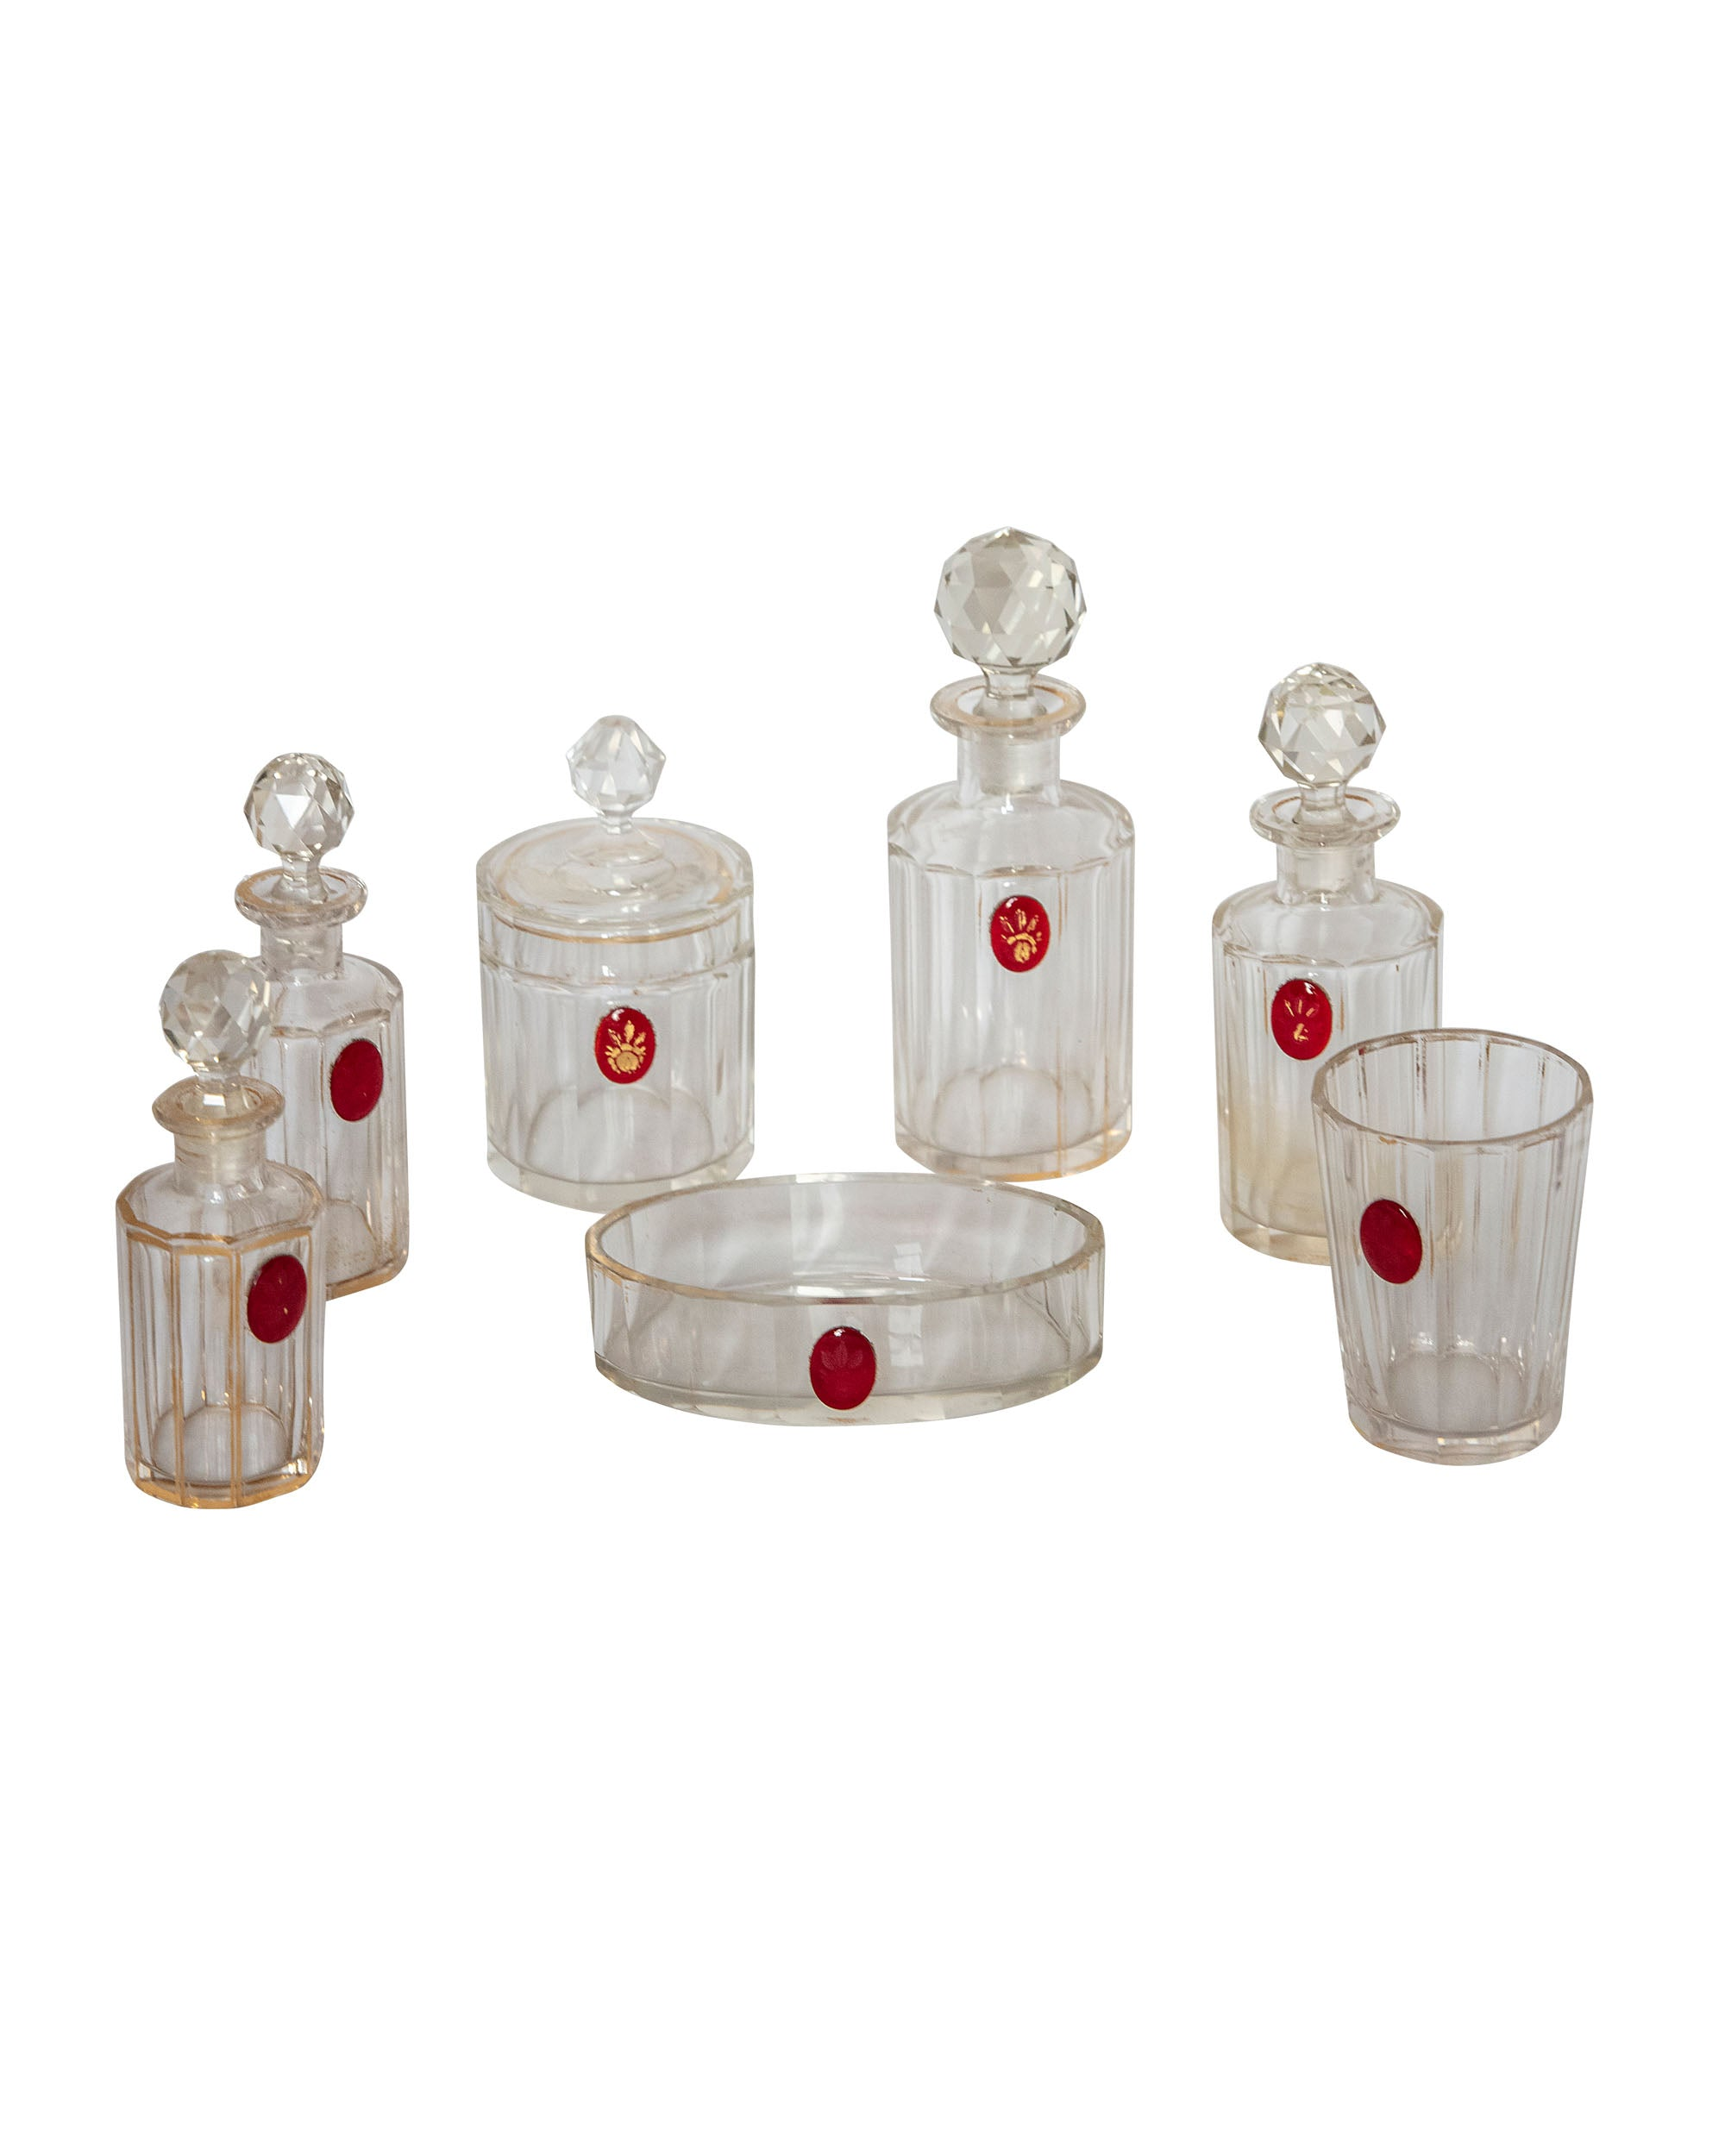 Bathroom set consisting of seven pieces made of glass with golden edge and seal on red glass